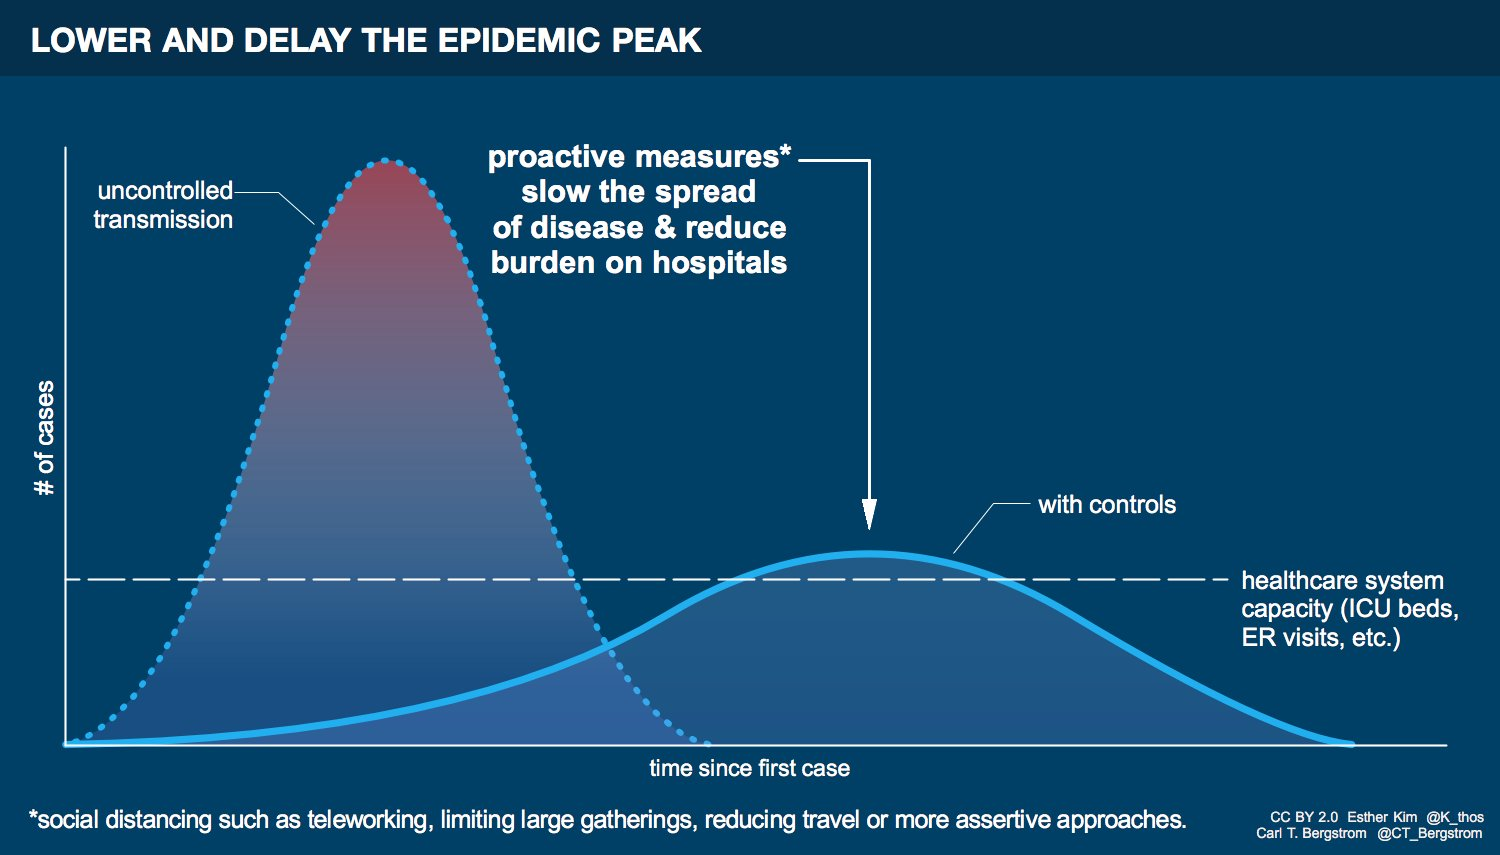 Proactive measures slow the spread of disease and reduce burden on hospitals